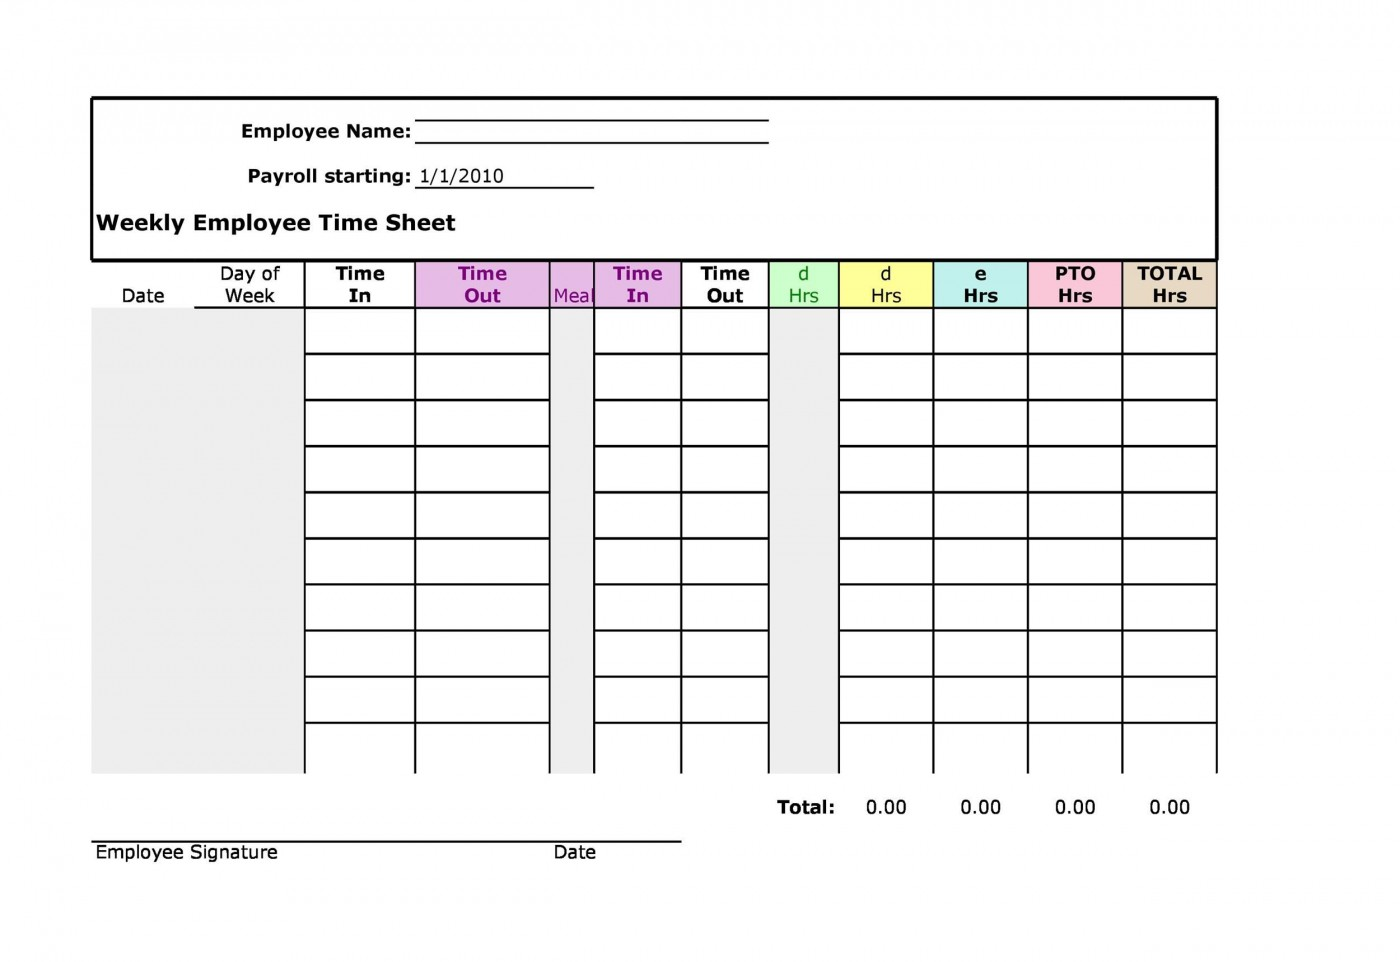 008 Amazing Employee Time Card Printable High Def  Timesheet Template Excel Free Multiple Sheet1400